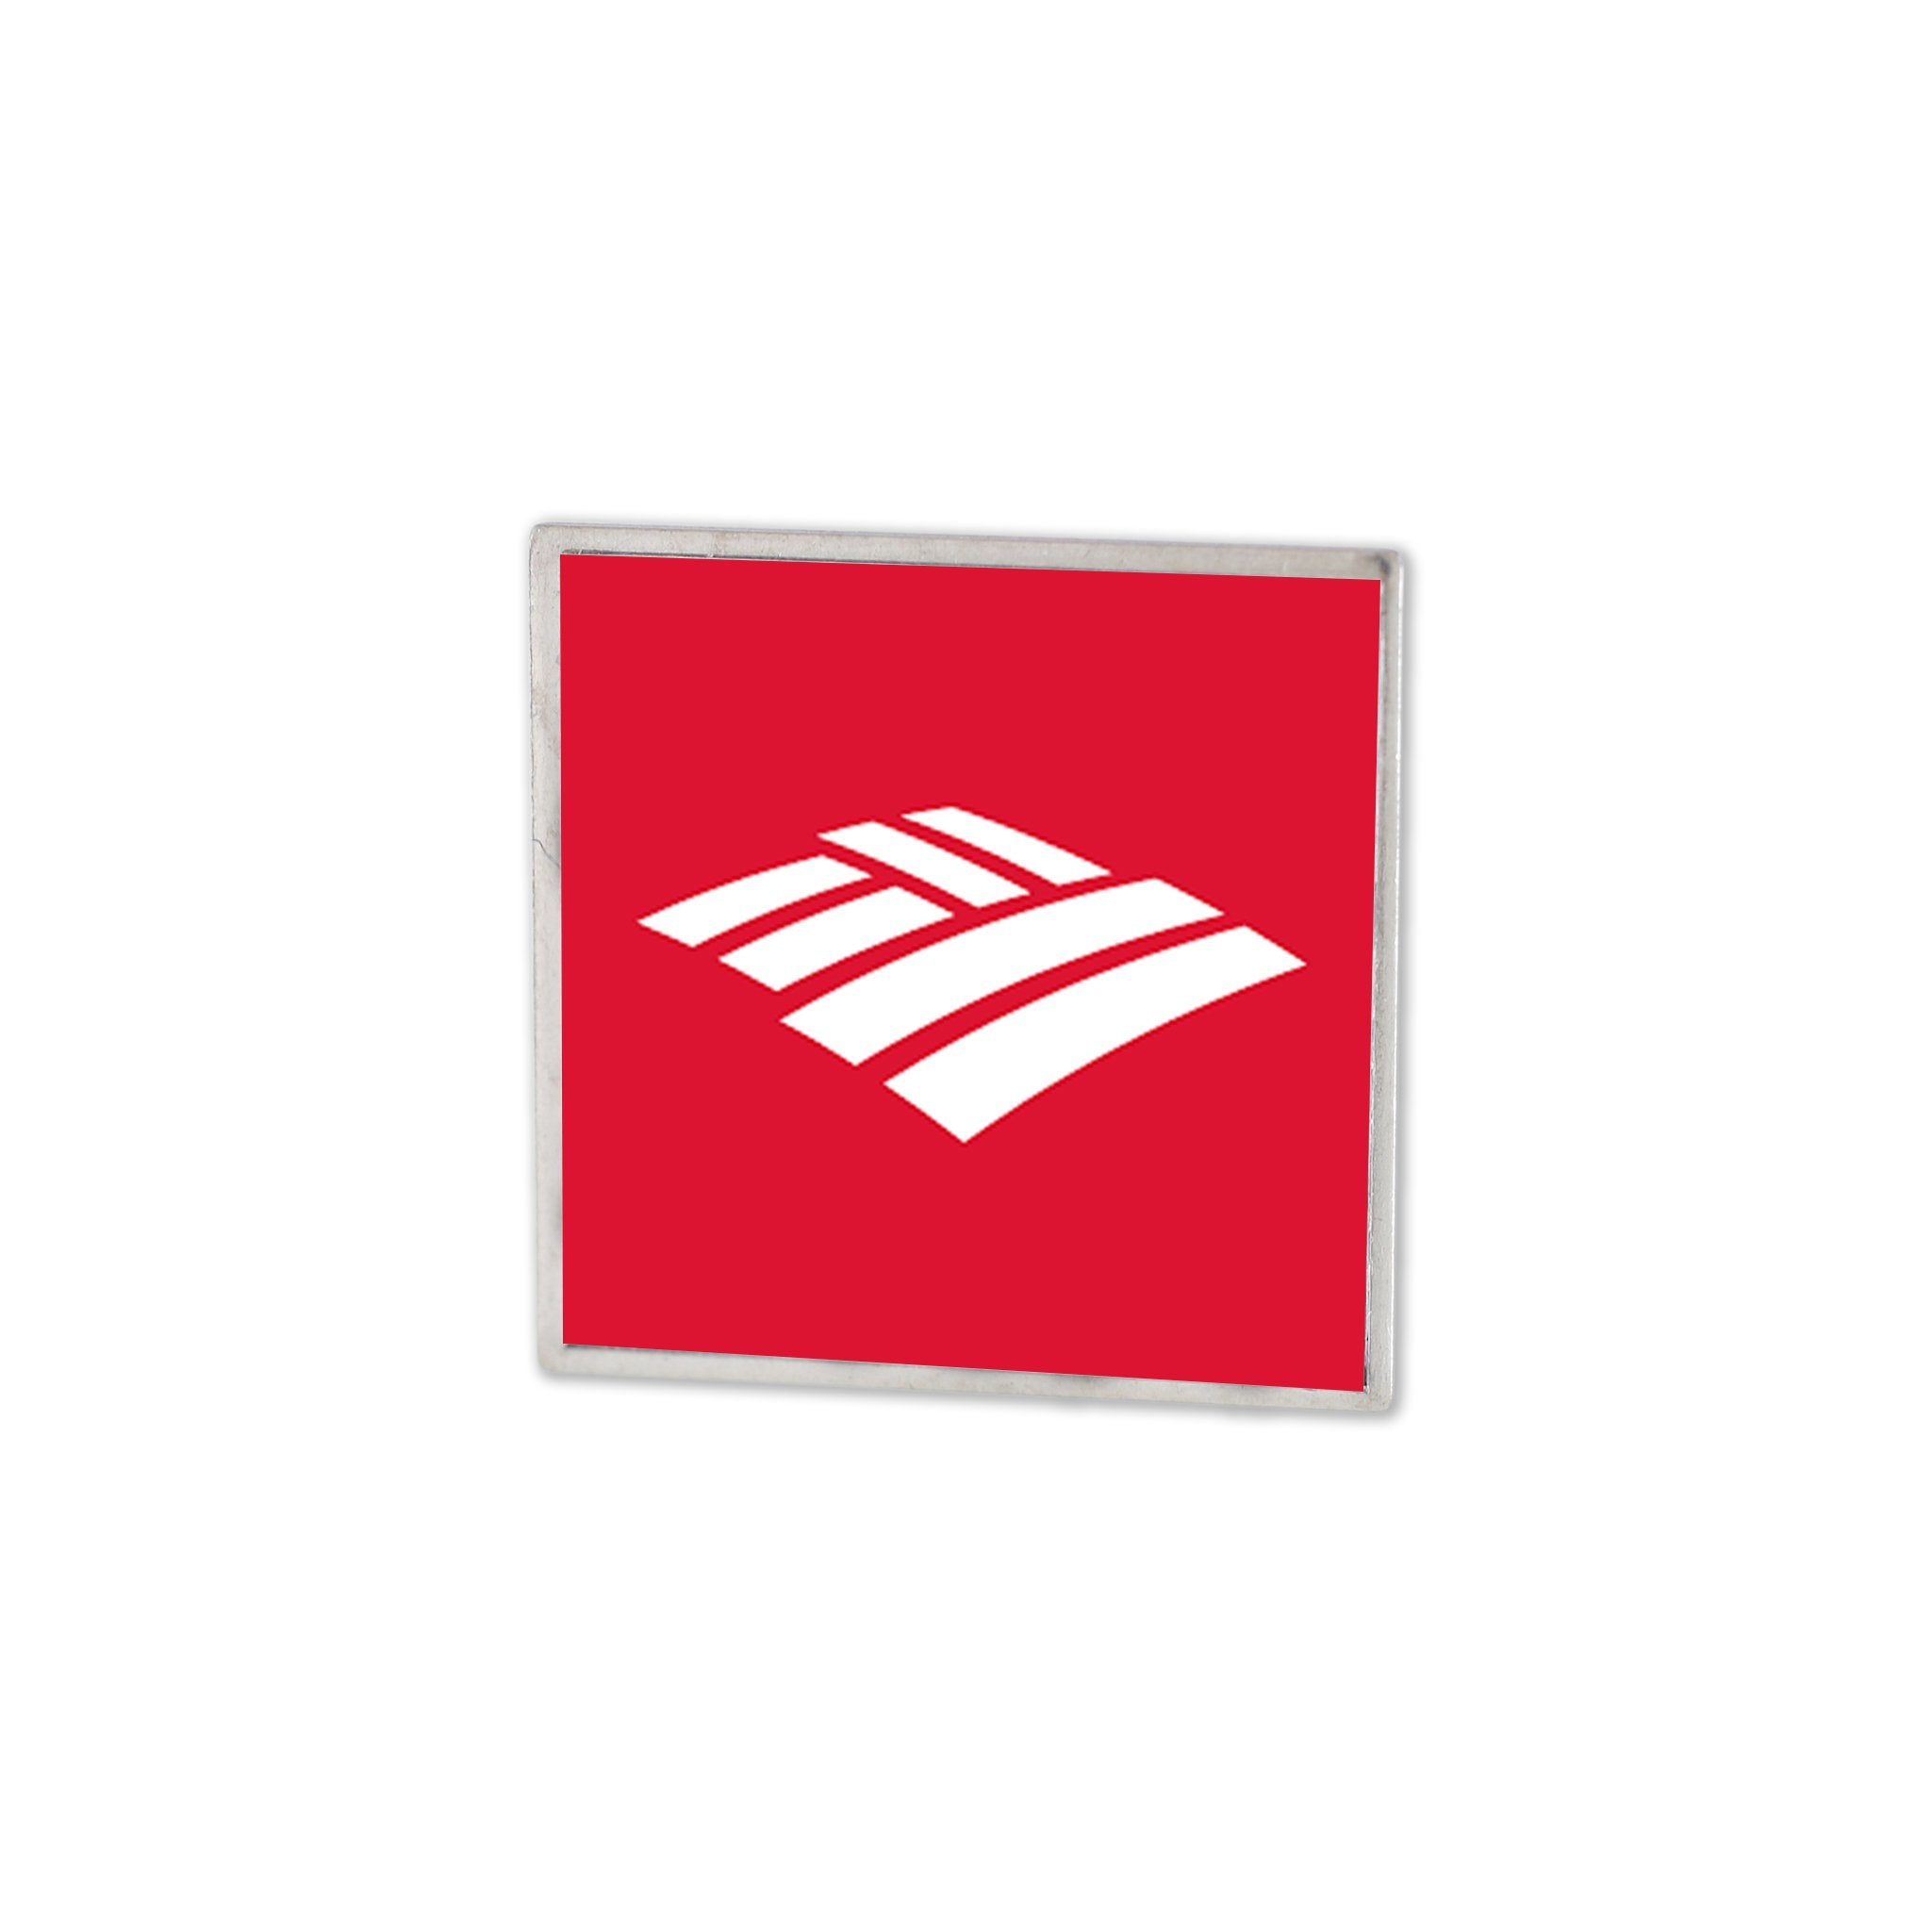 bank of america custom lapel pin with printed logo design on square stock shape